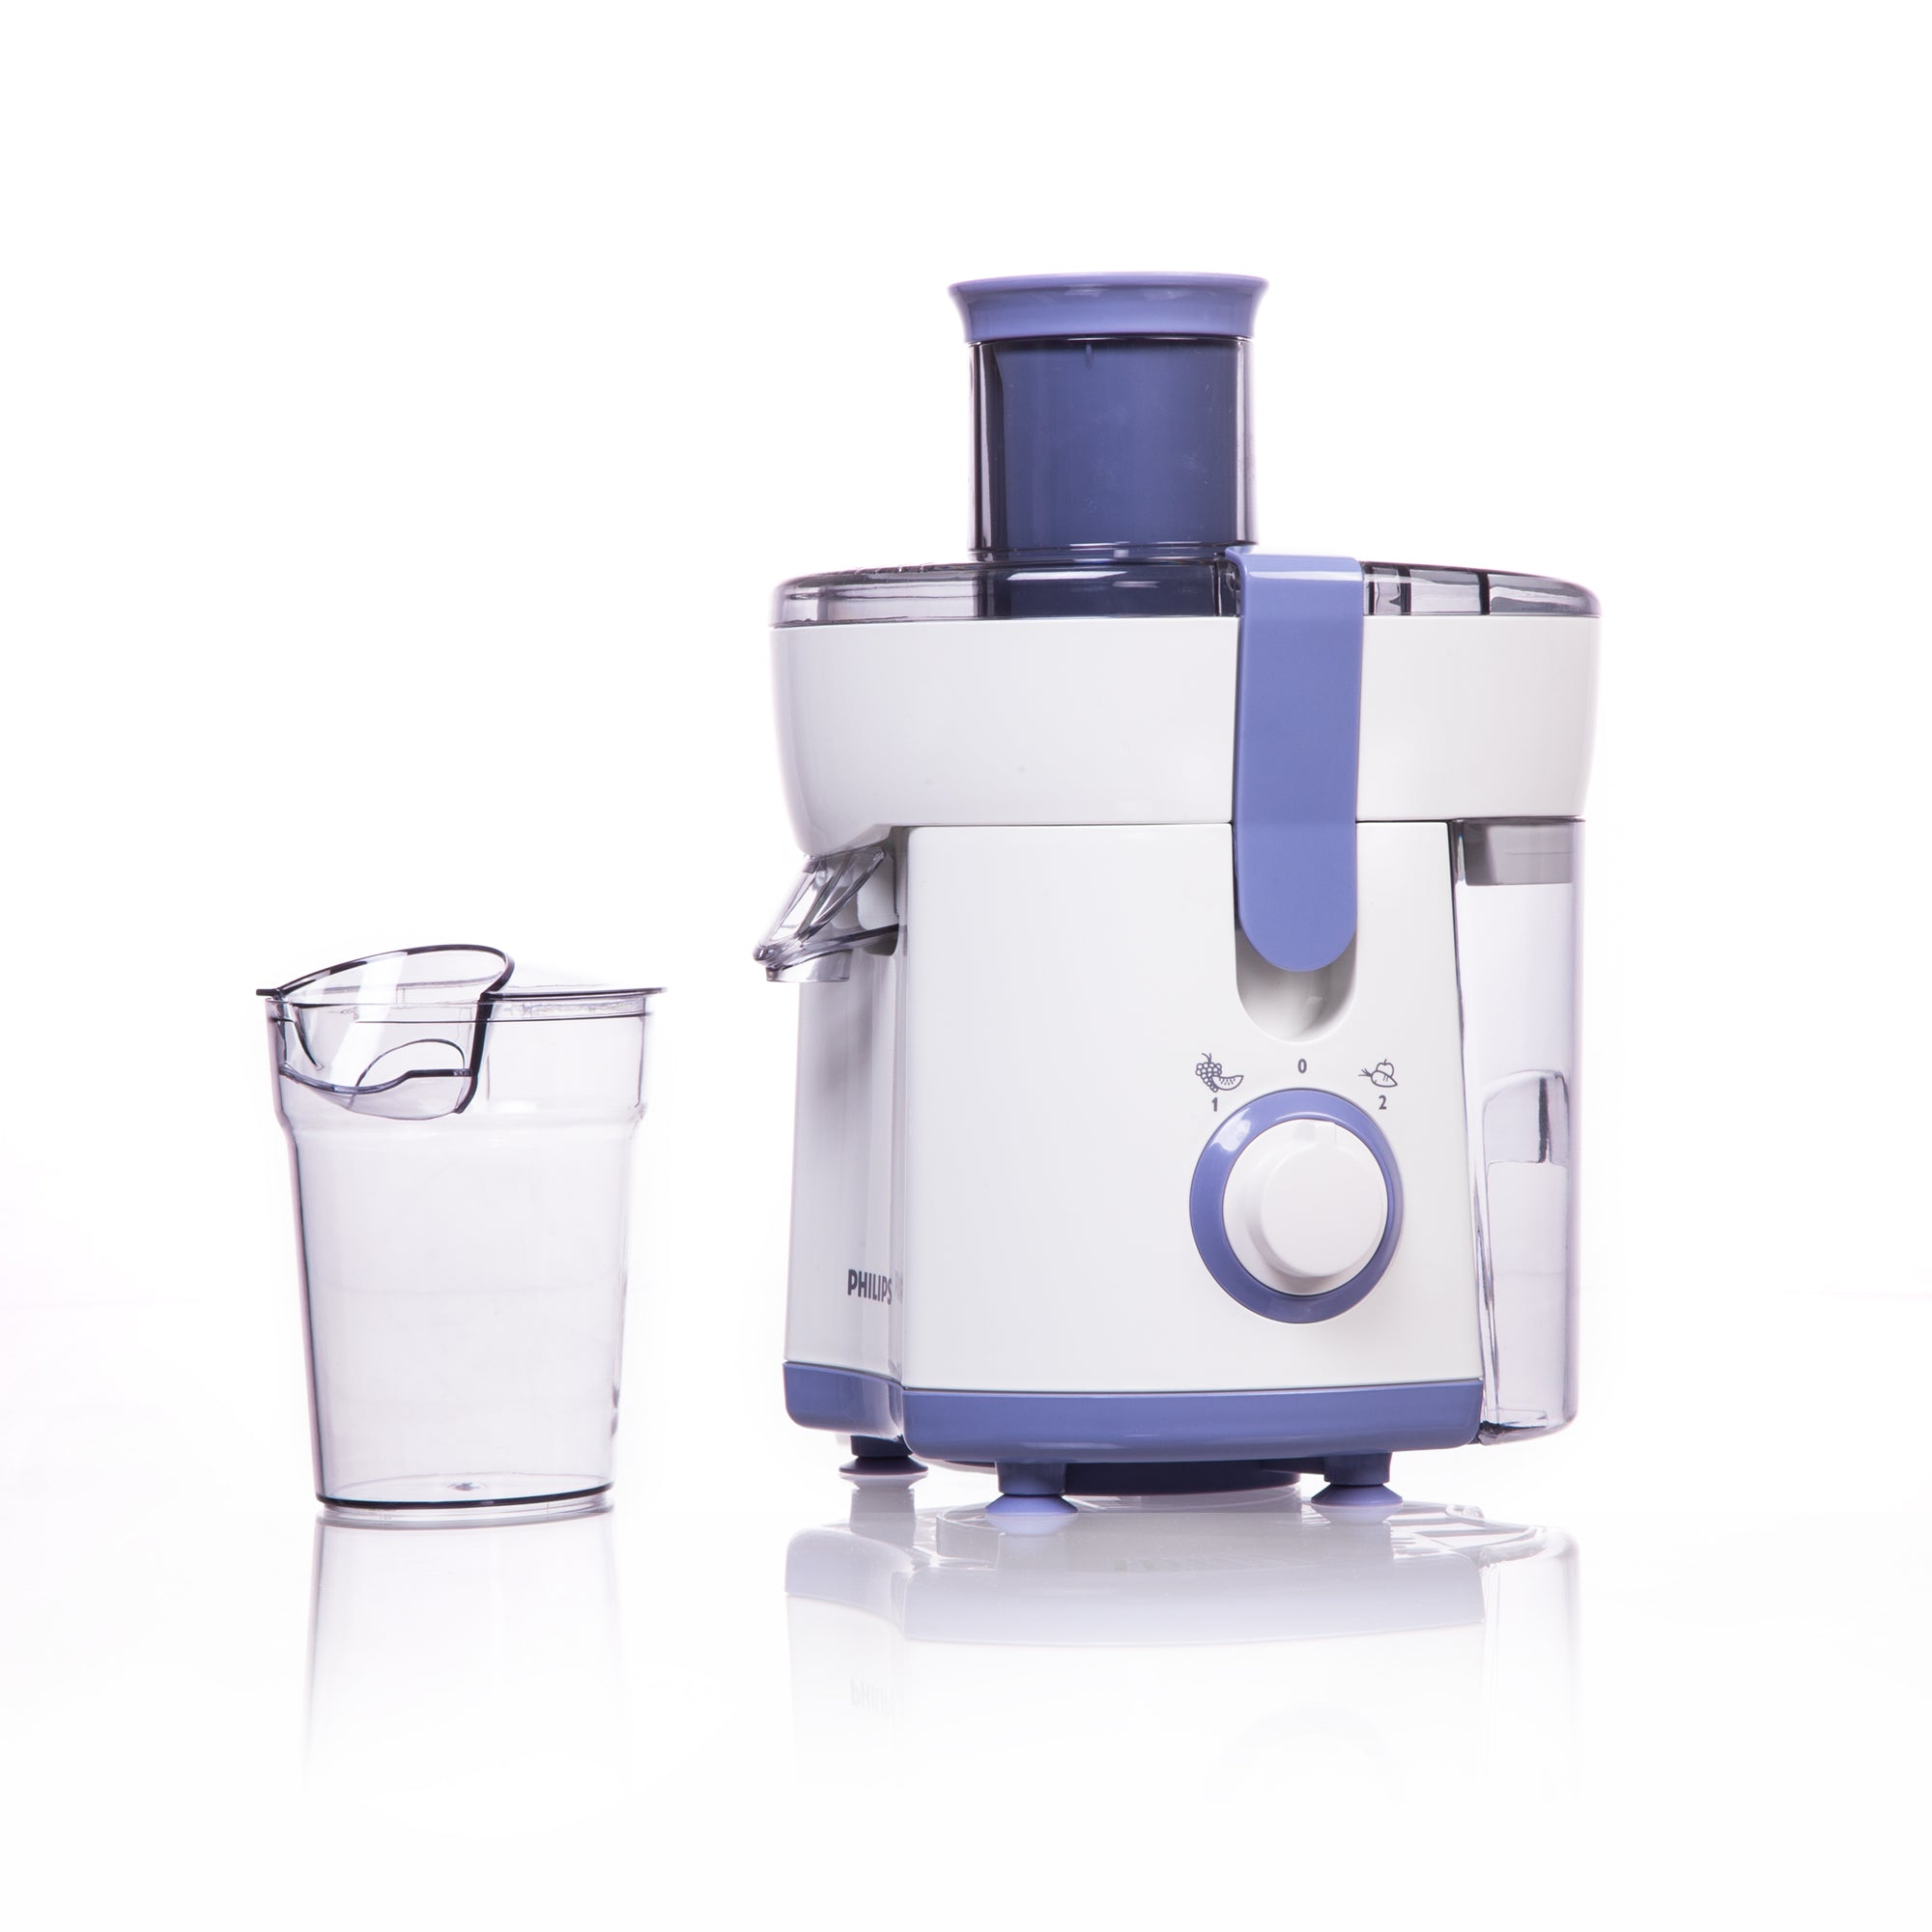 Philips Juicer HR1811/71